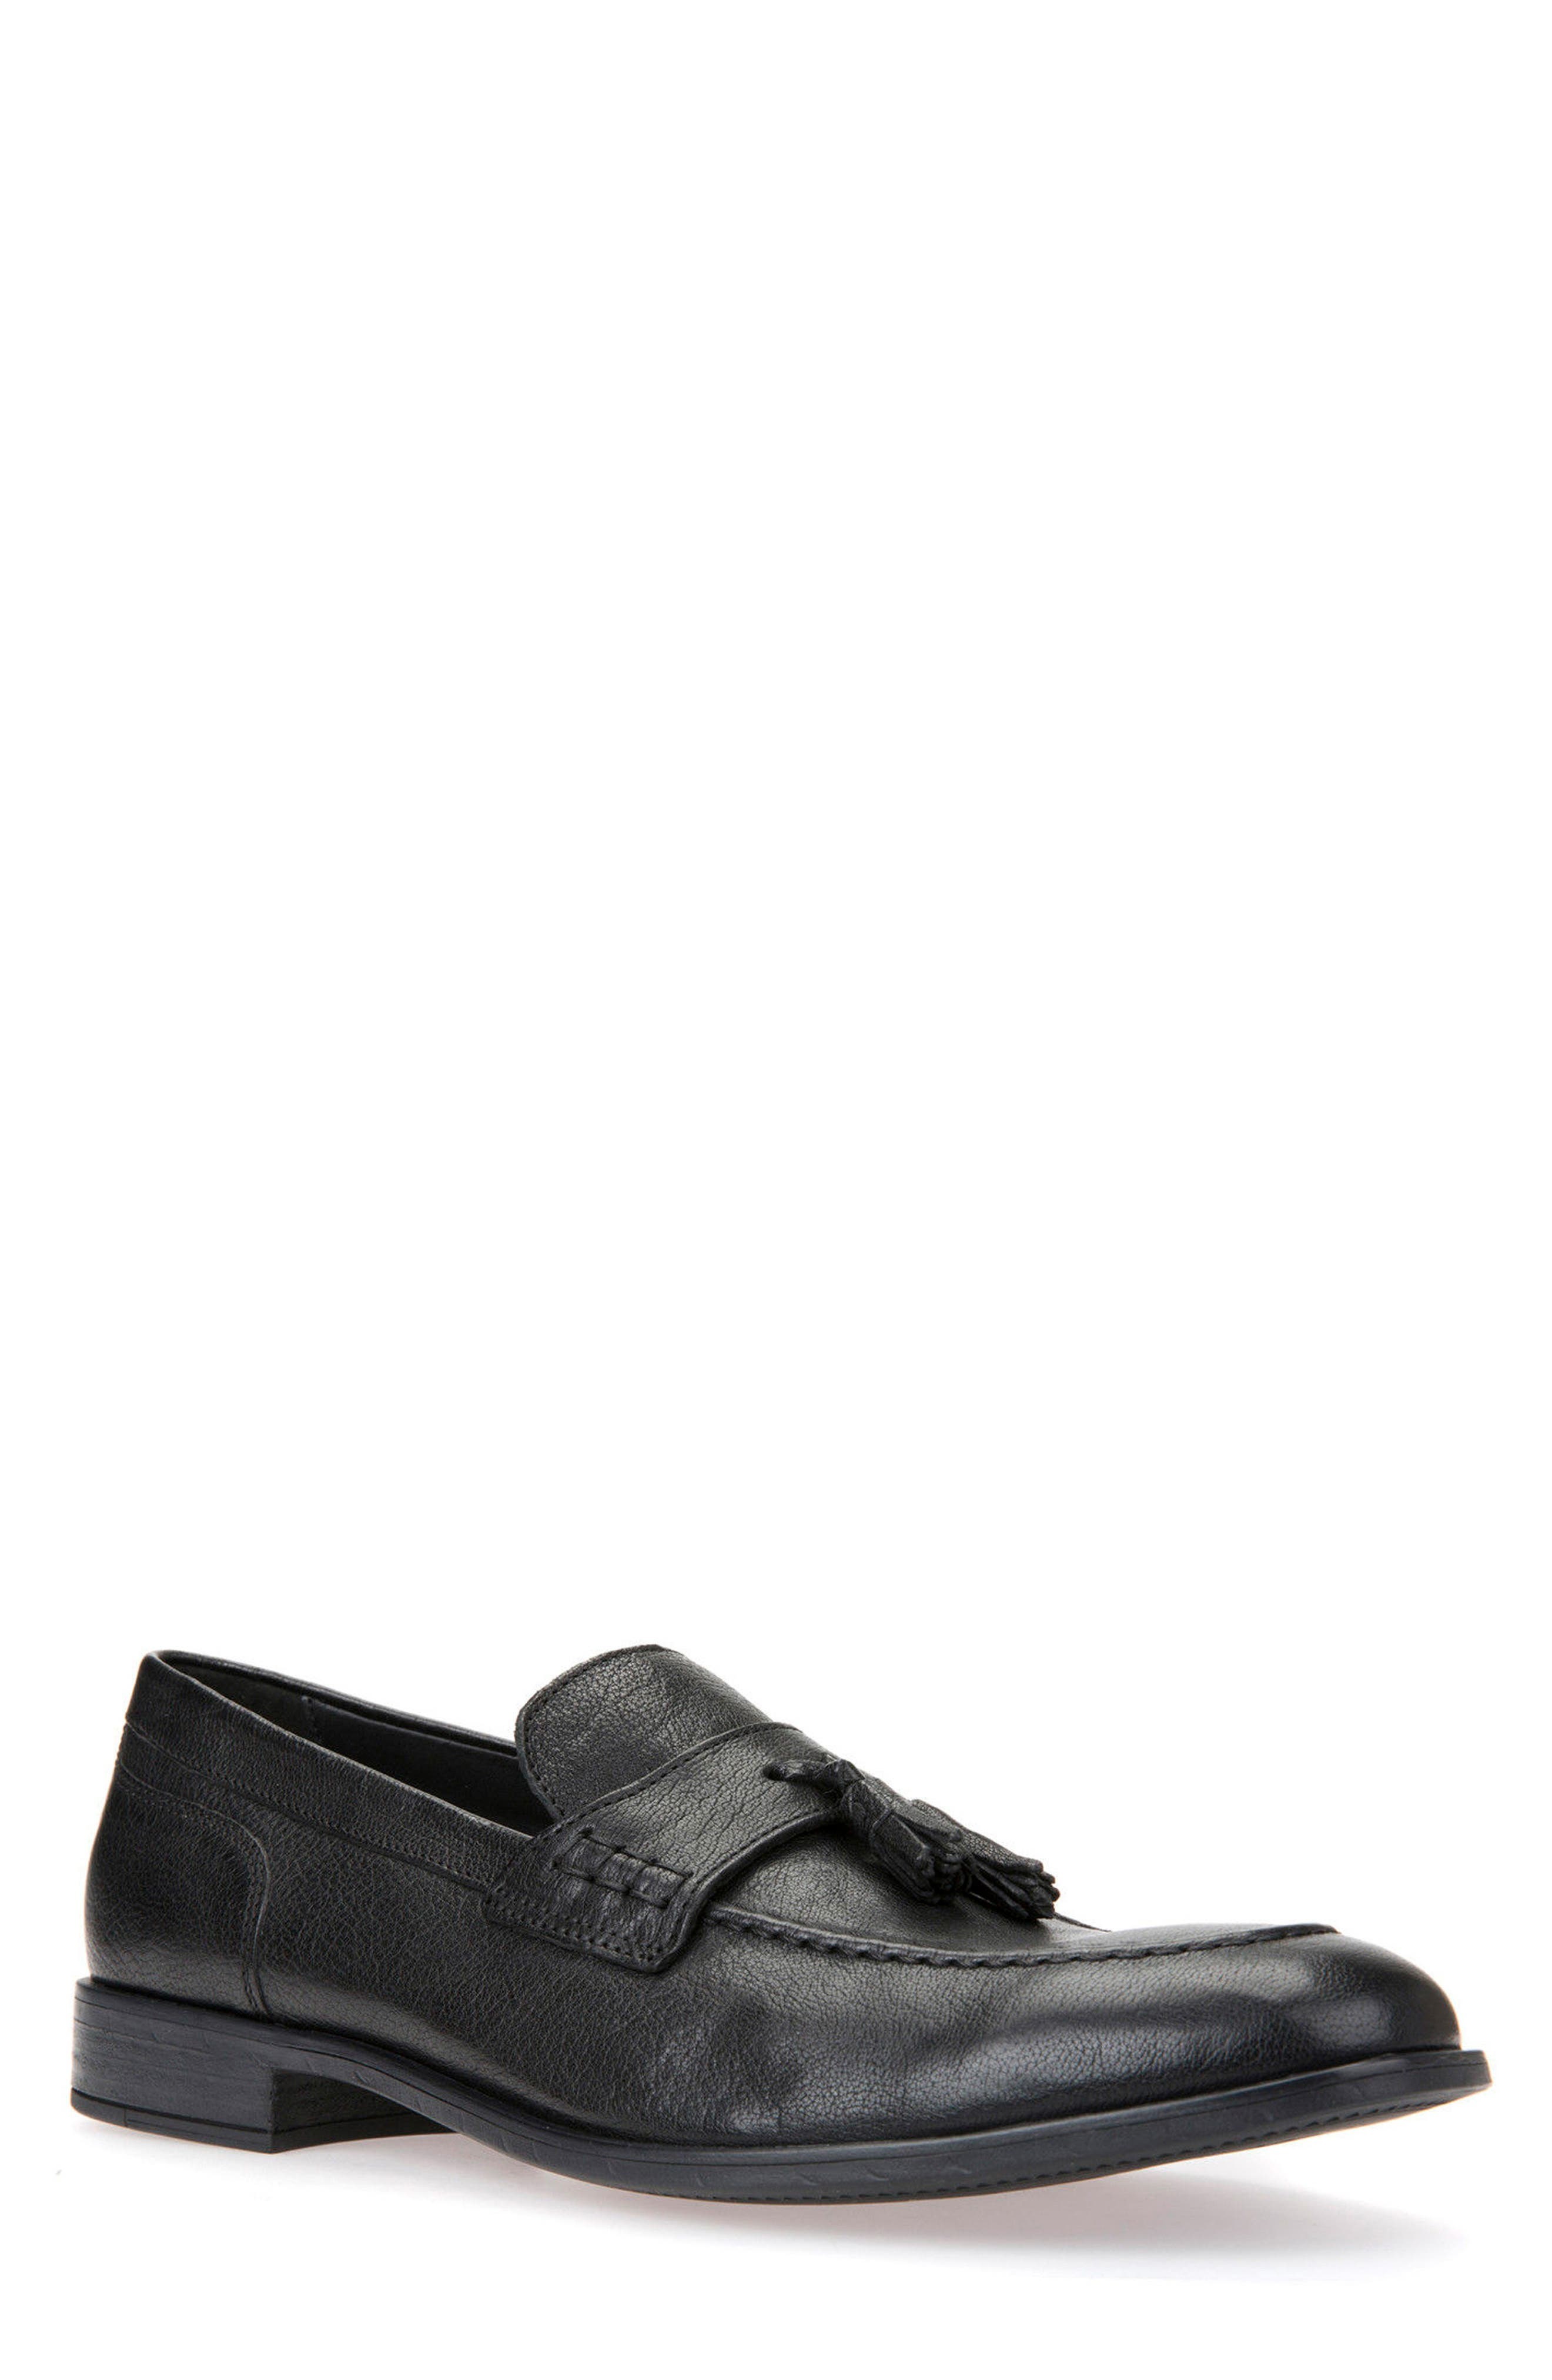 Bryceton 4 Tassel Loafer,                             Main thumbnail 1, color,                             Black Leather